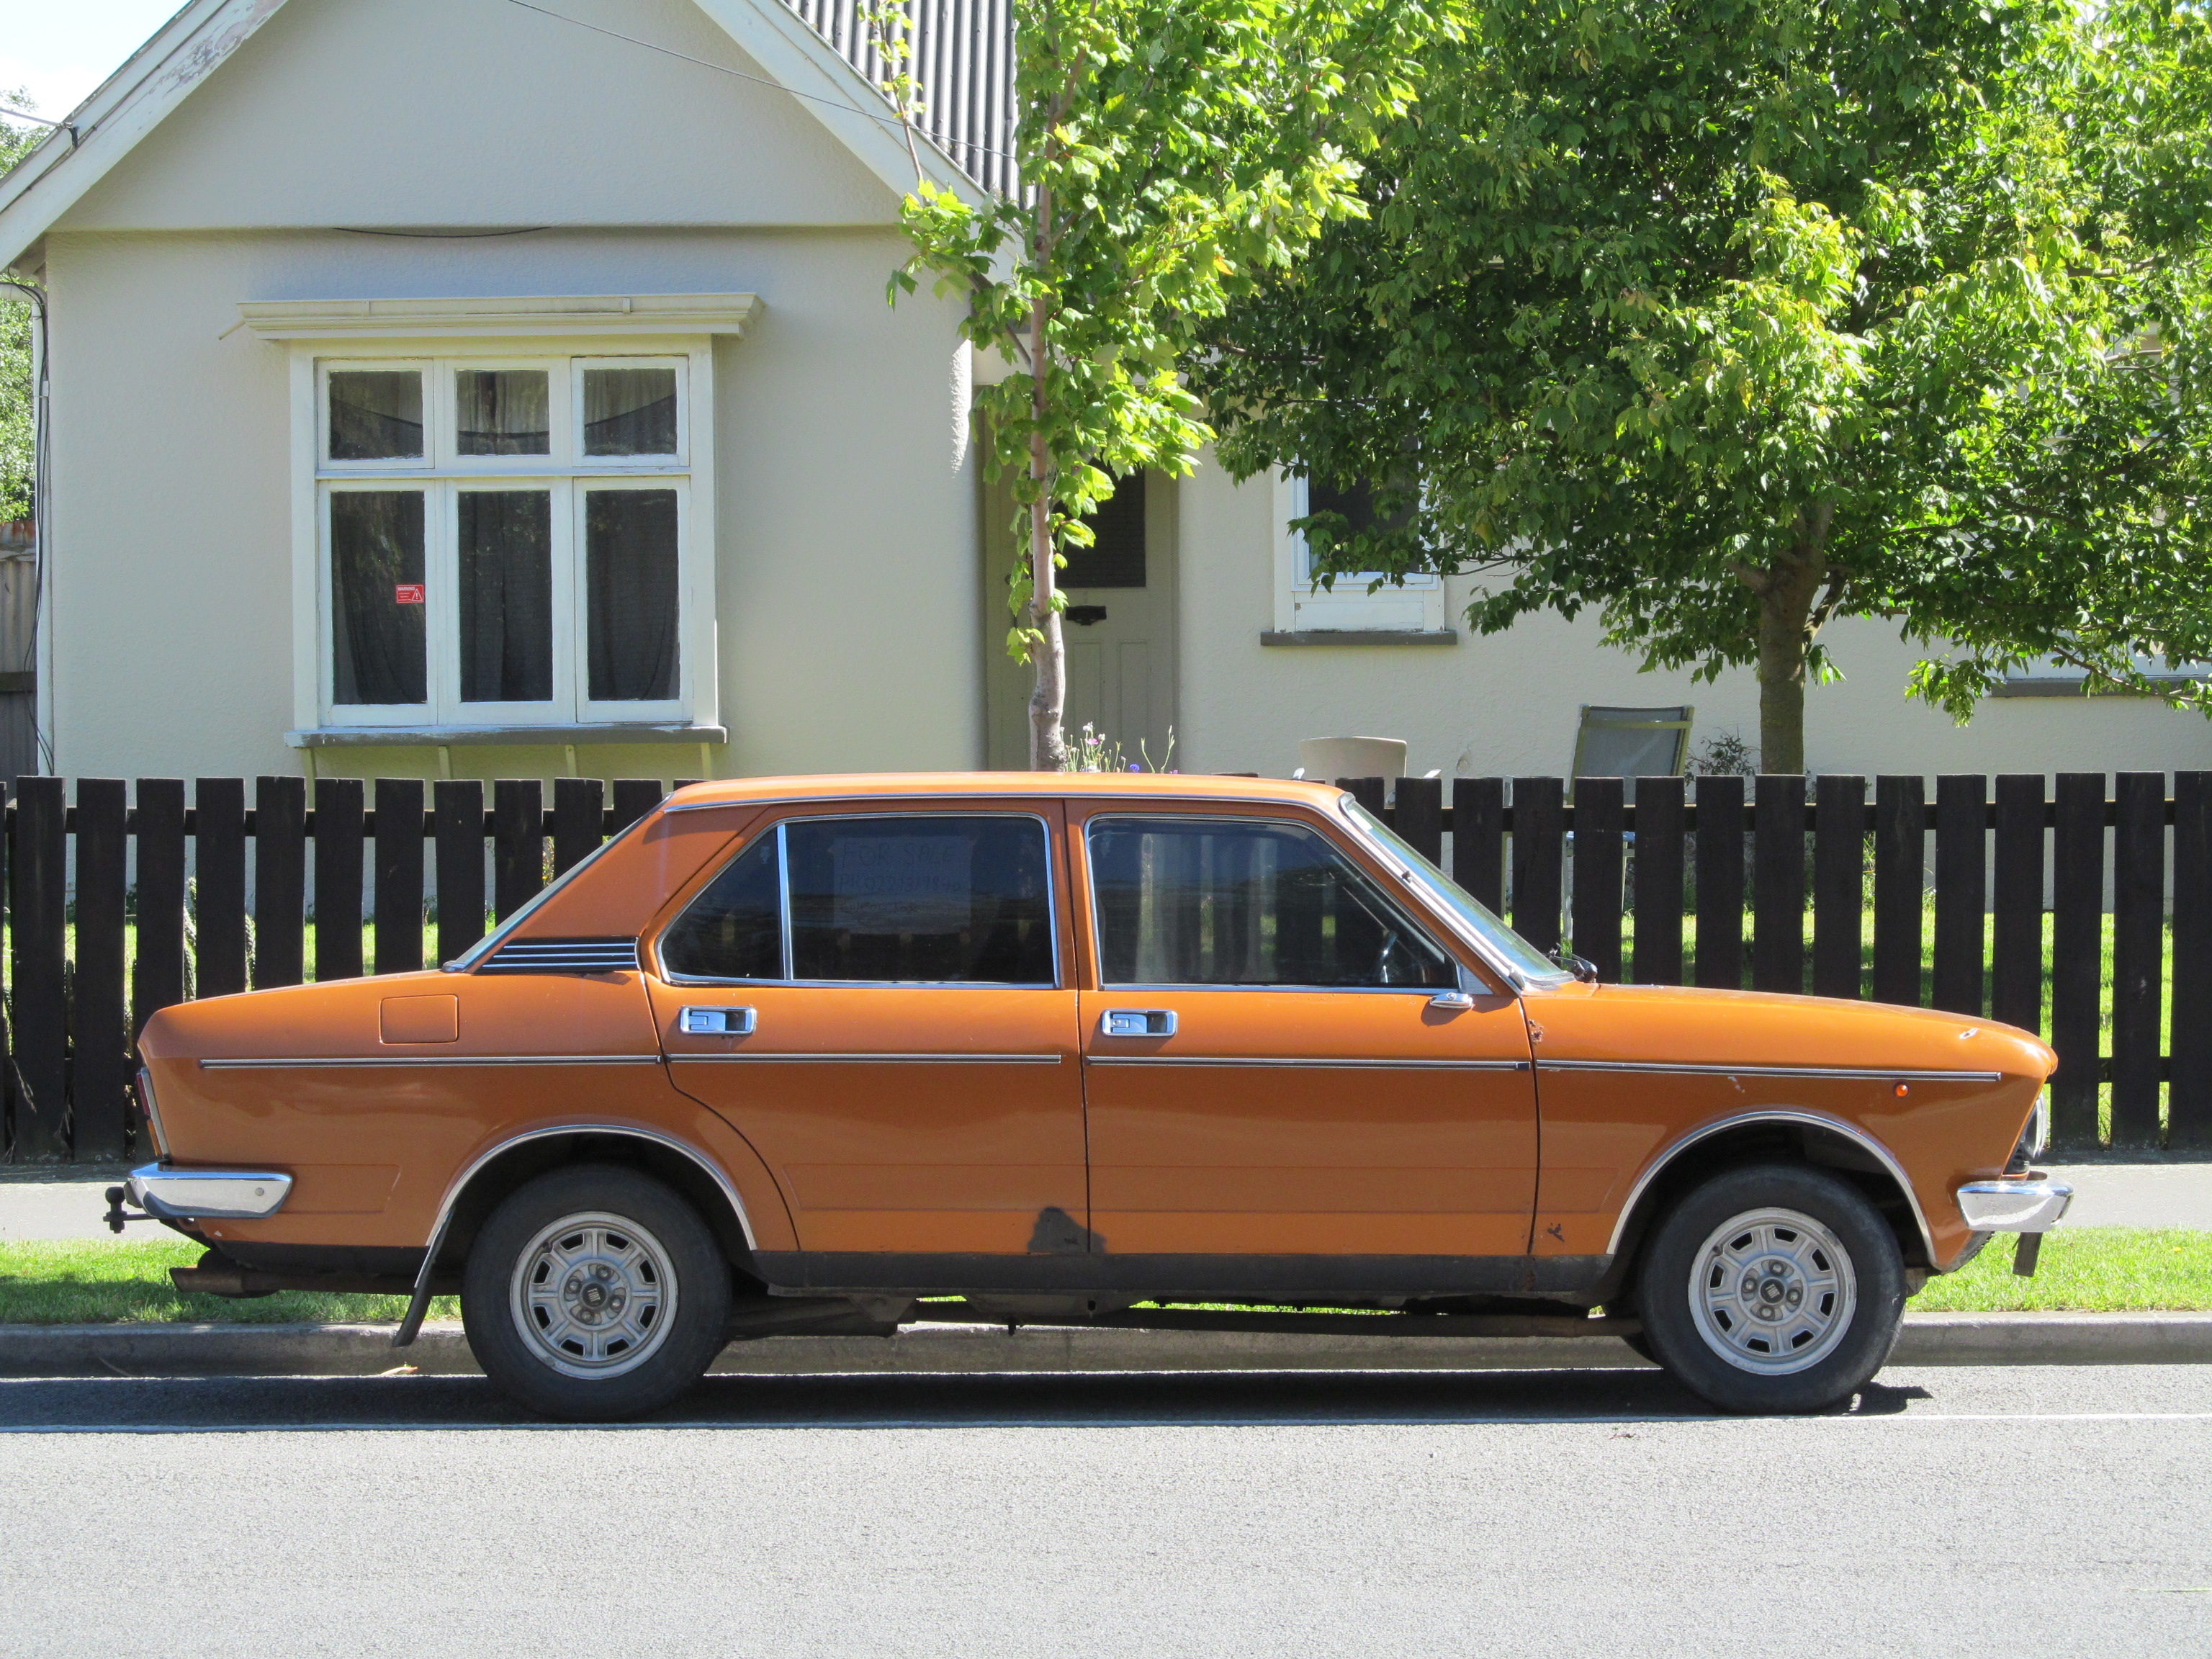 turbo i wiki e commons fiat nz uno file wikimedia